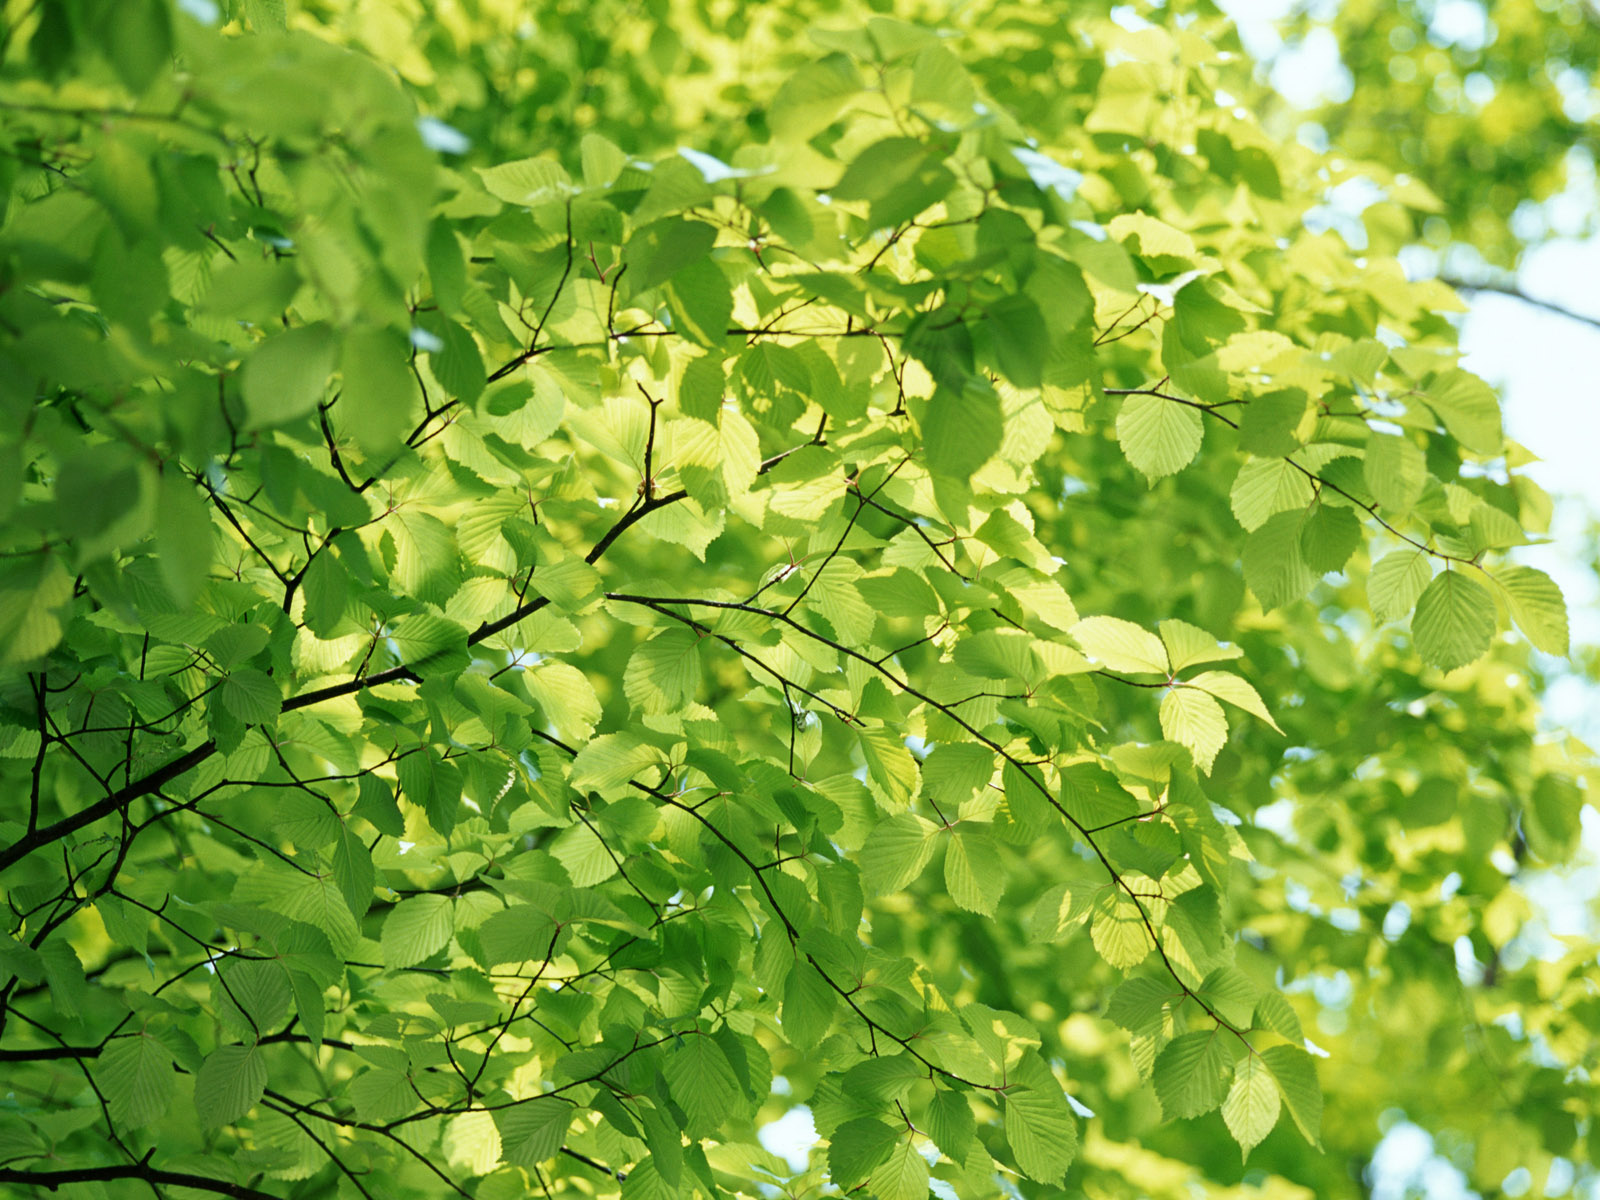 Wallpaper green background - Tree with Leaves